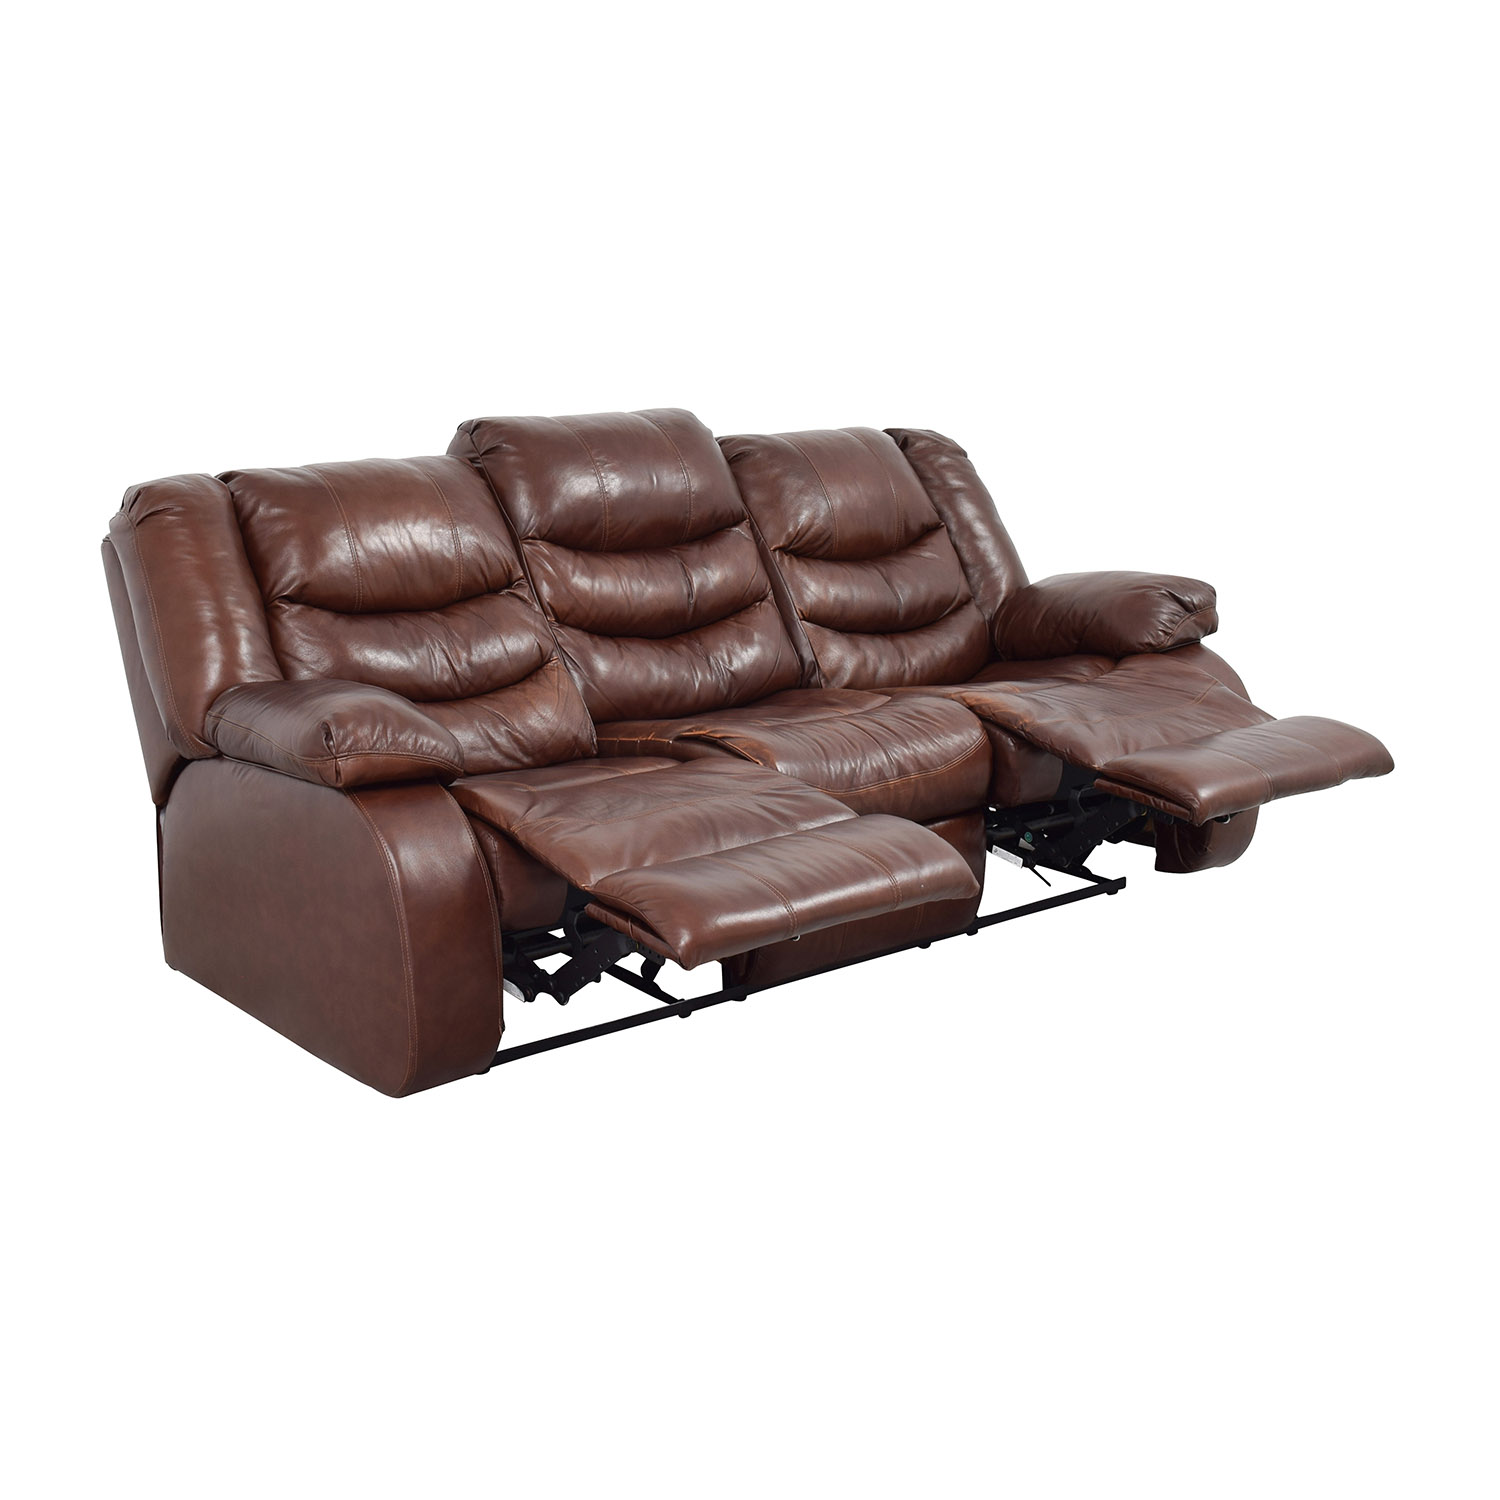 Ashleys Furniture Ashley Furniture Large Brown Leather Reclining Couch dimensions